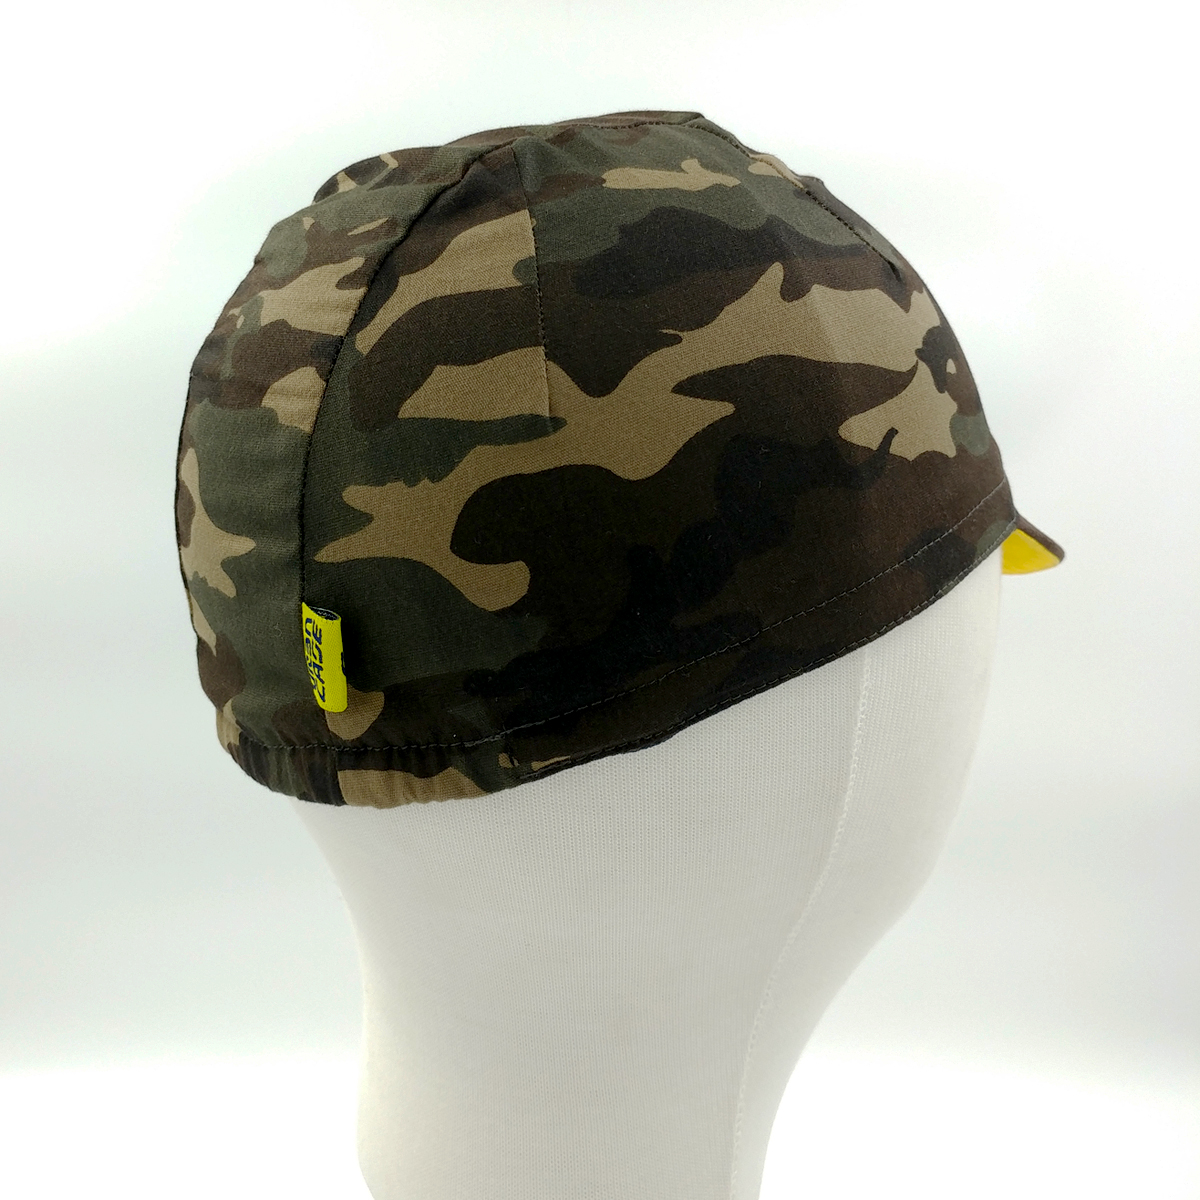 cycling cap - camo3panel3